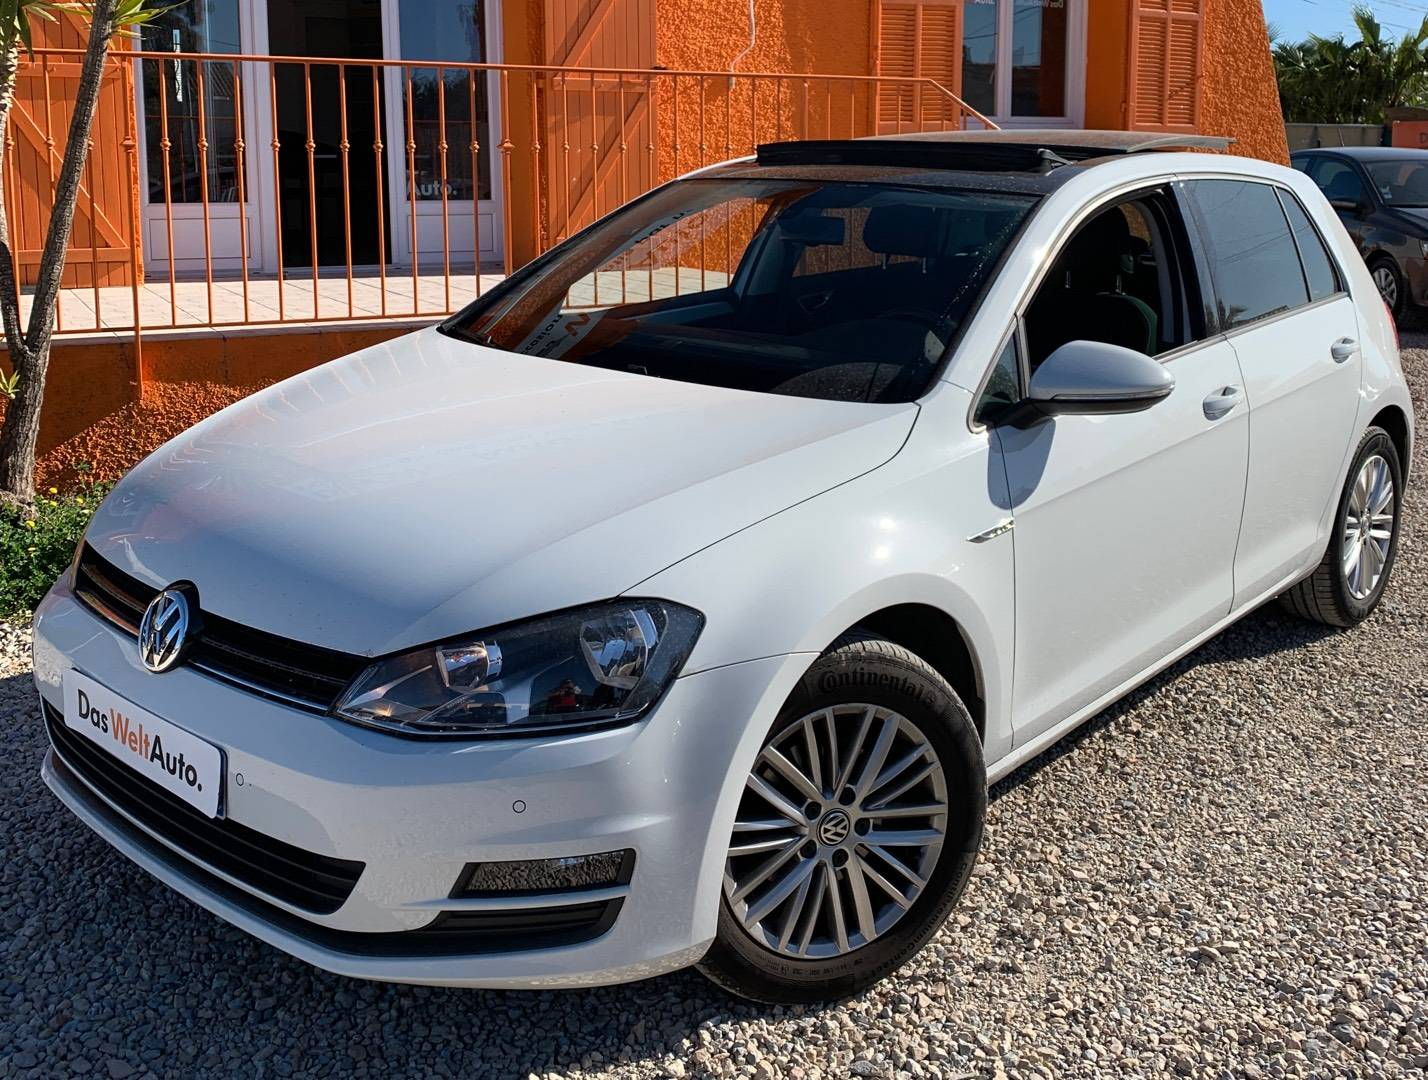 Golf 1.2 TSI 105 BlueMotion Technology